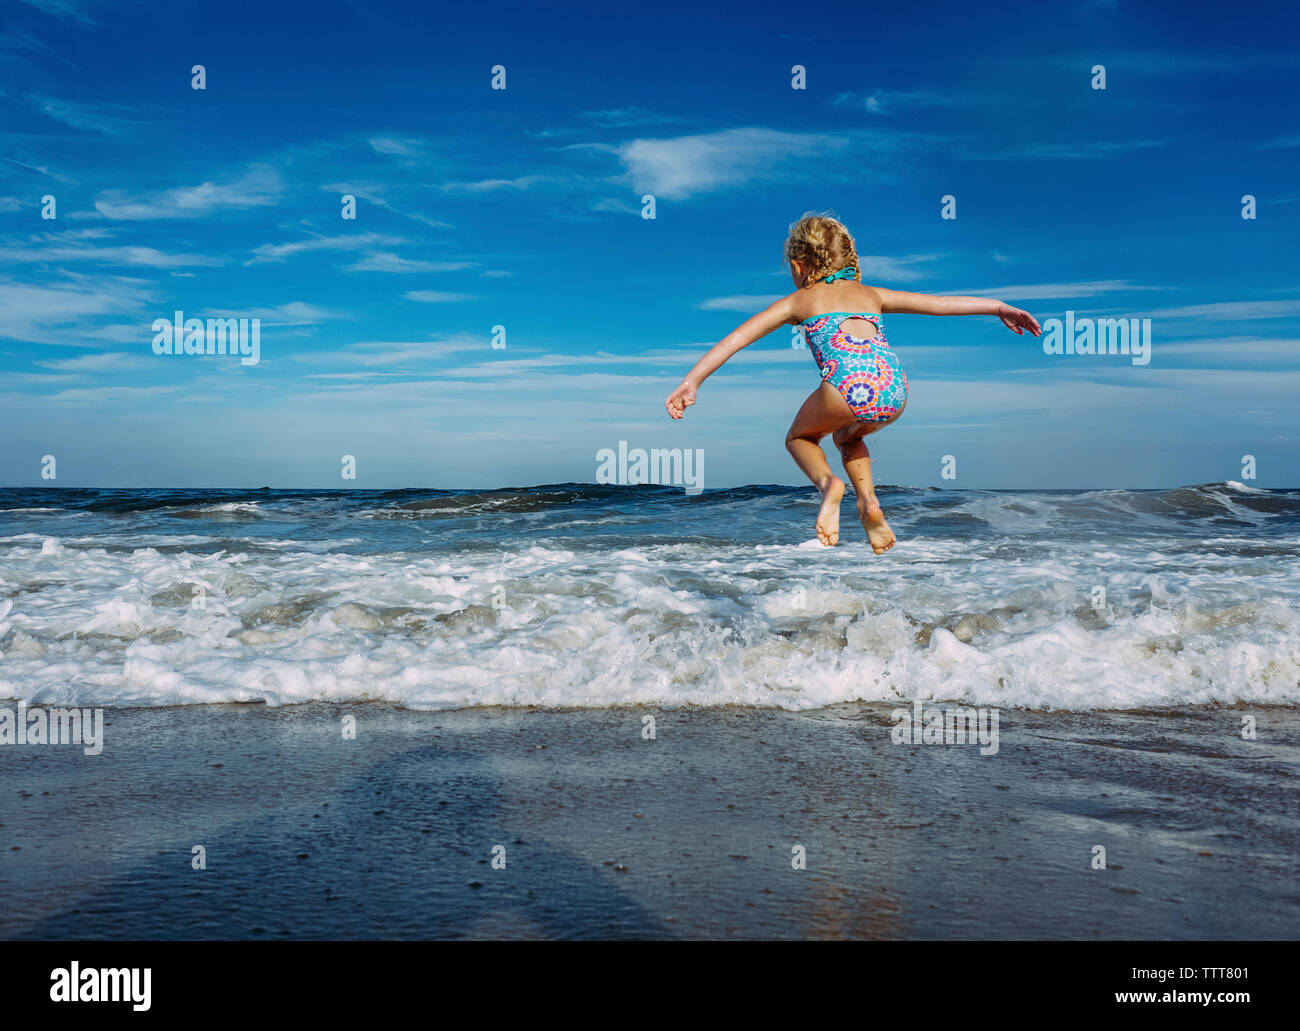 Full length of playful girl with arms outstretched jumping over shore against sky - Stock Image